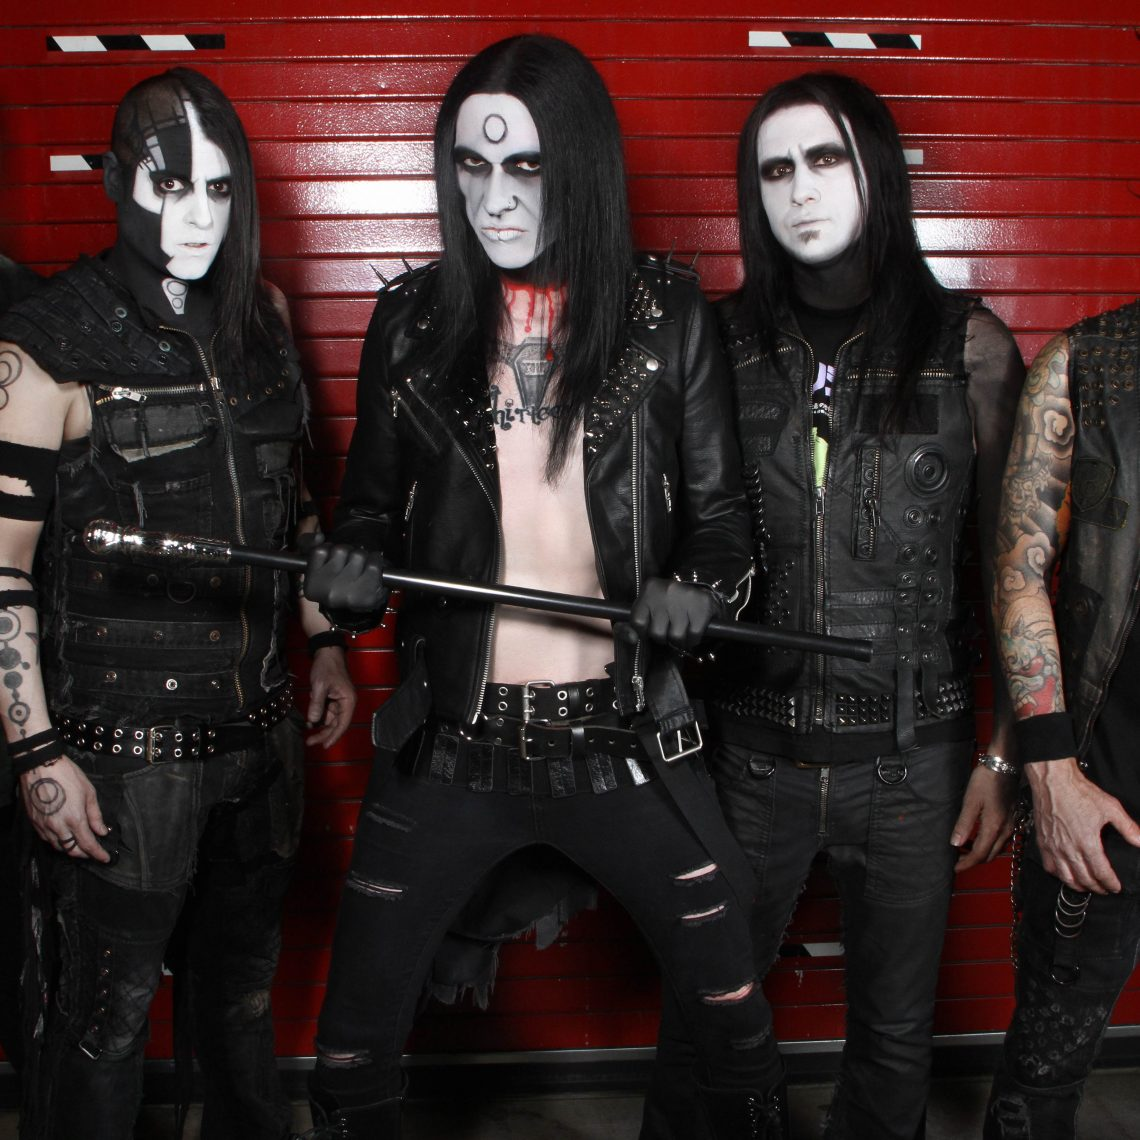 WEDNESDAY 13 announces annual UK Halloween shows